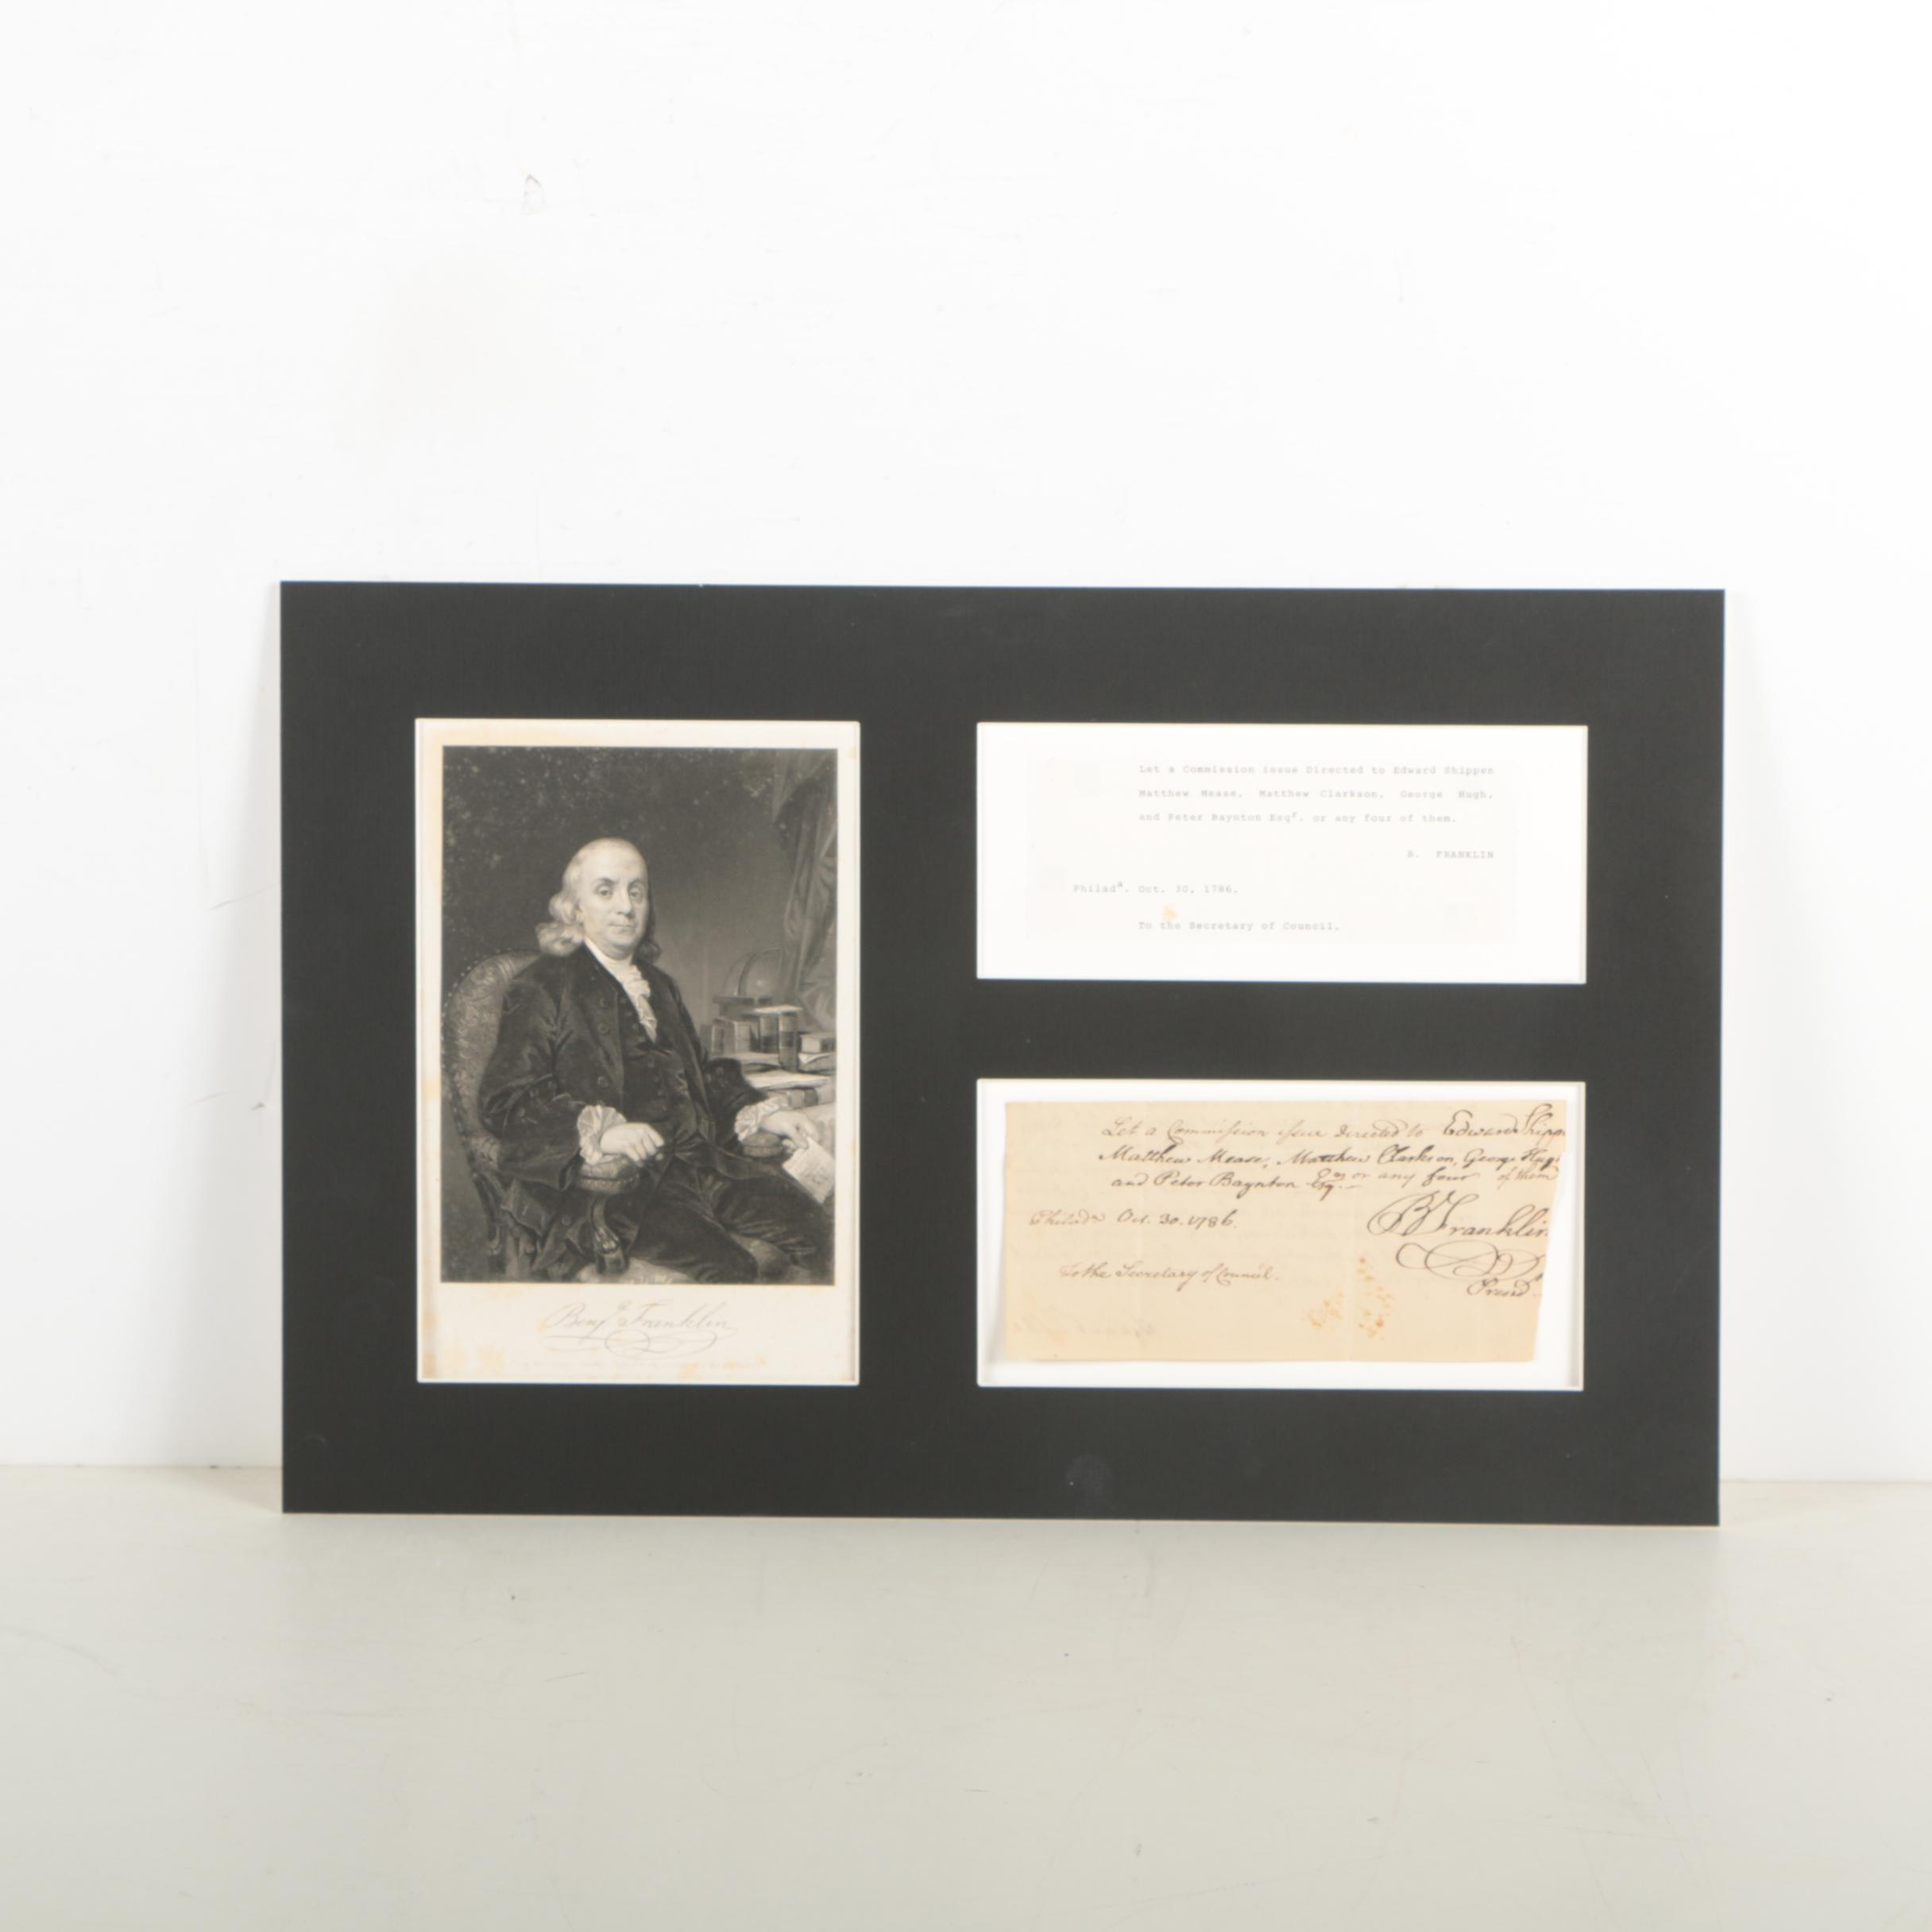 Benjamin Franklin Autograph Letter Signed October 30, 1786